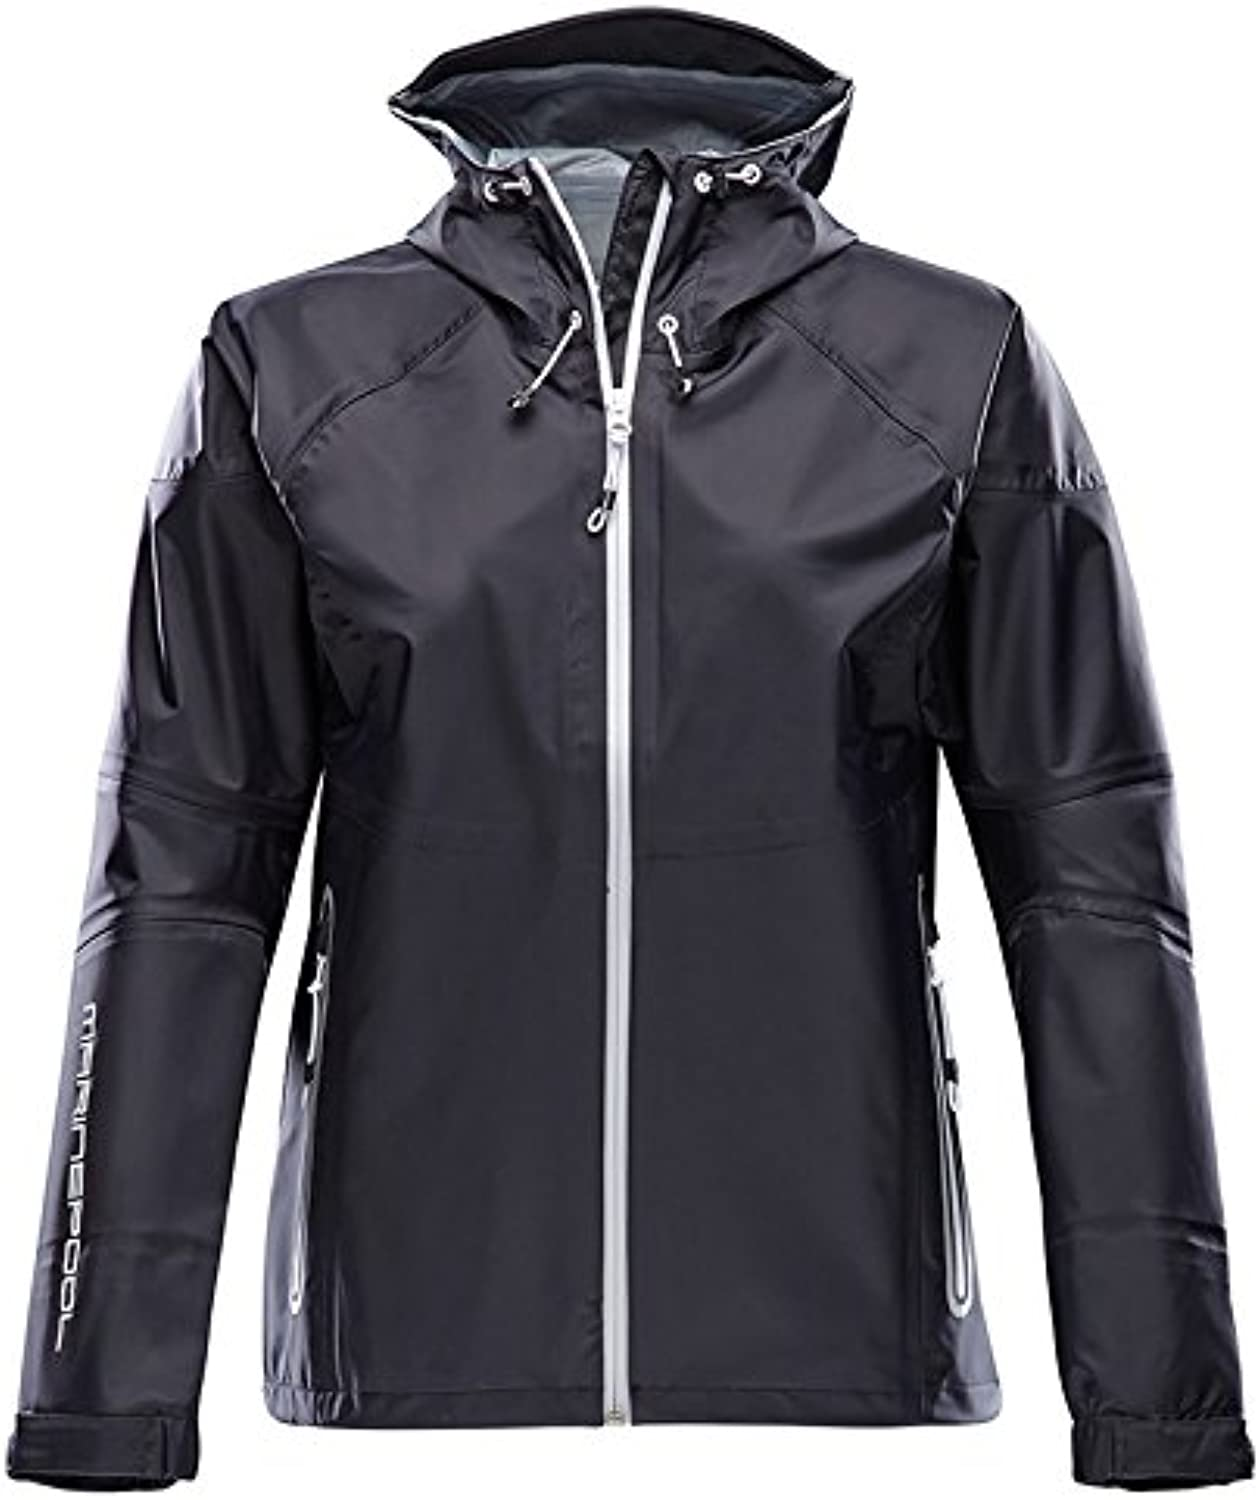 Marinepool Sailing Jacket Percé II